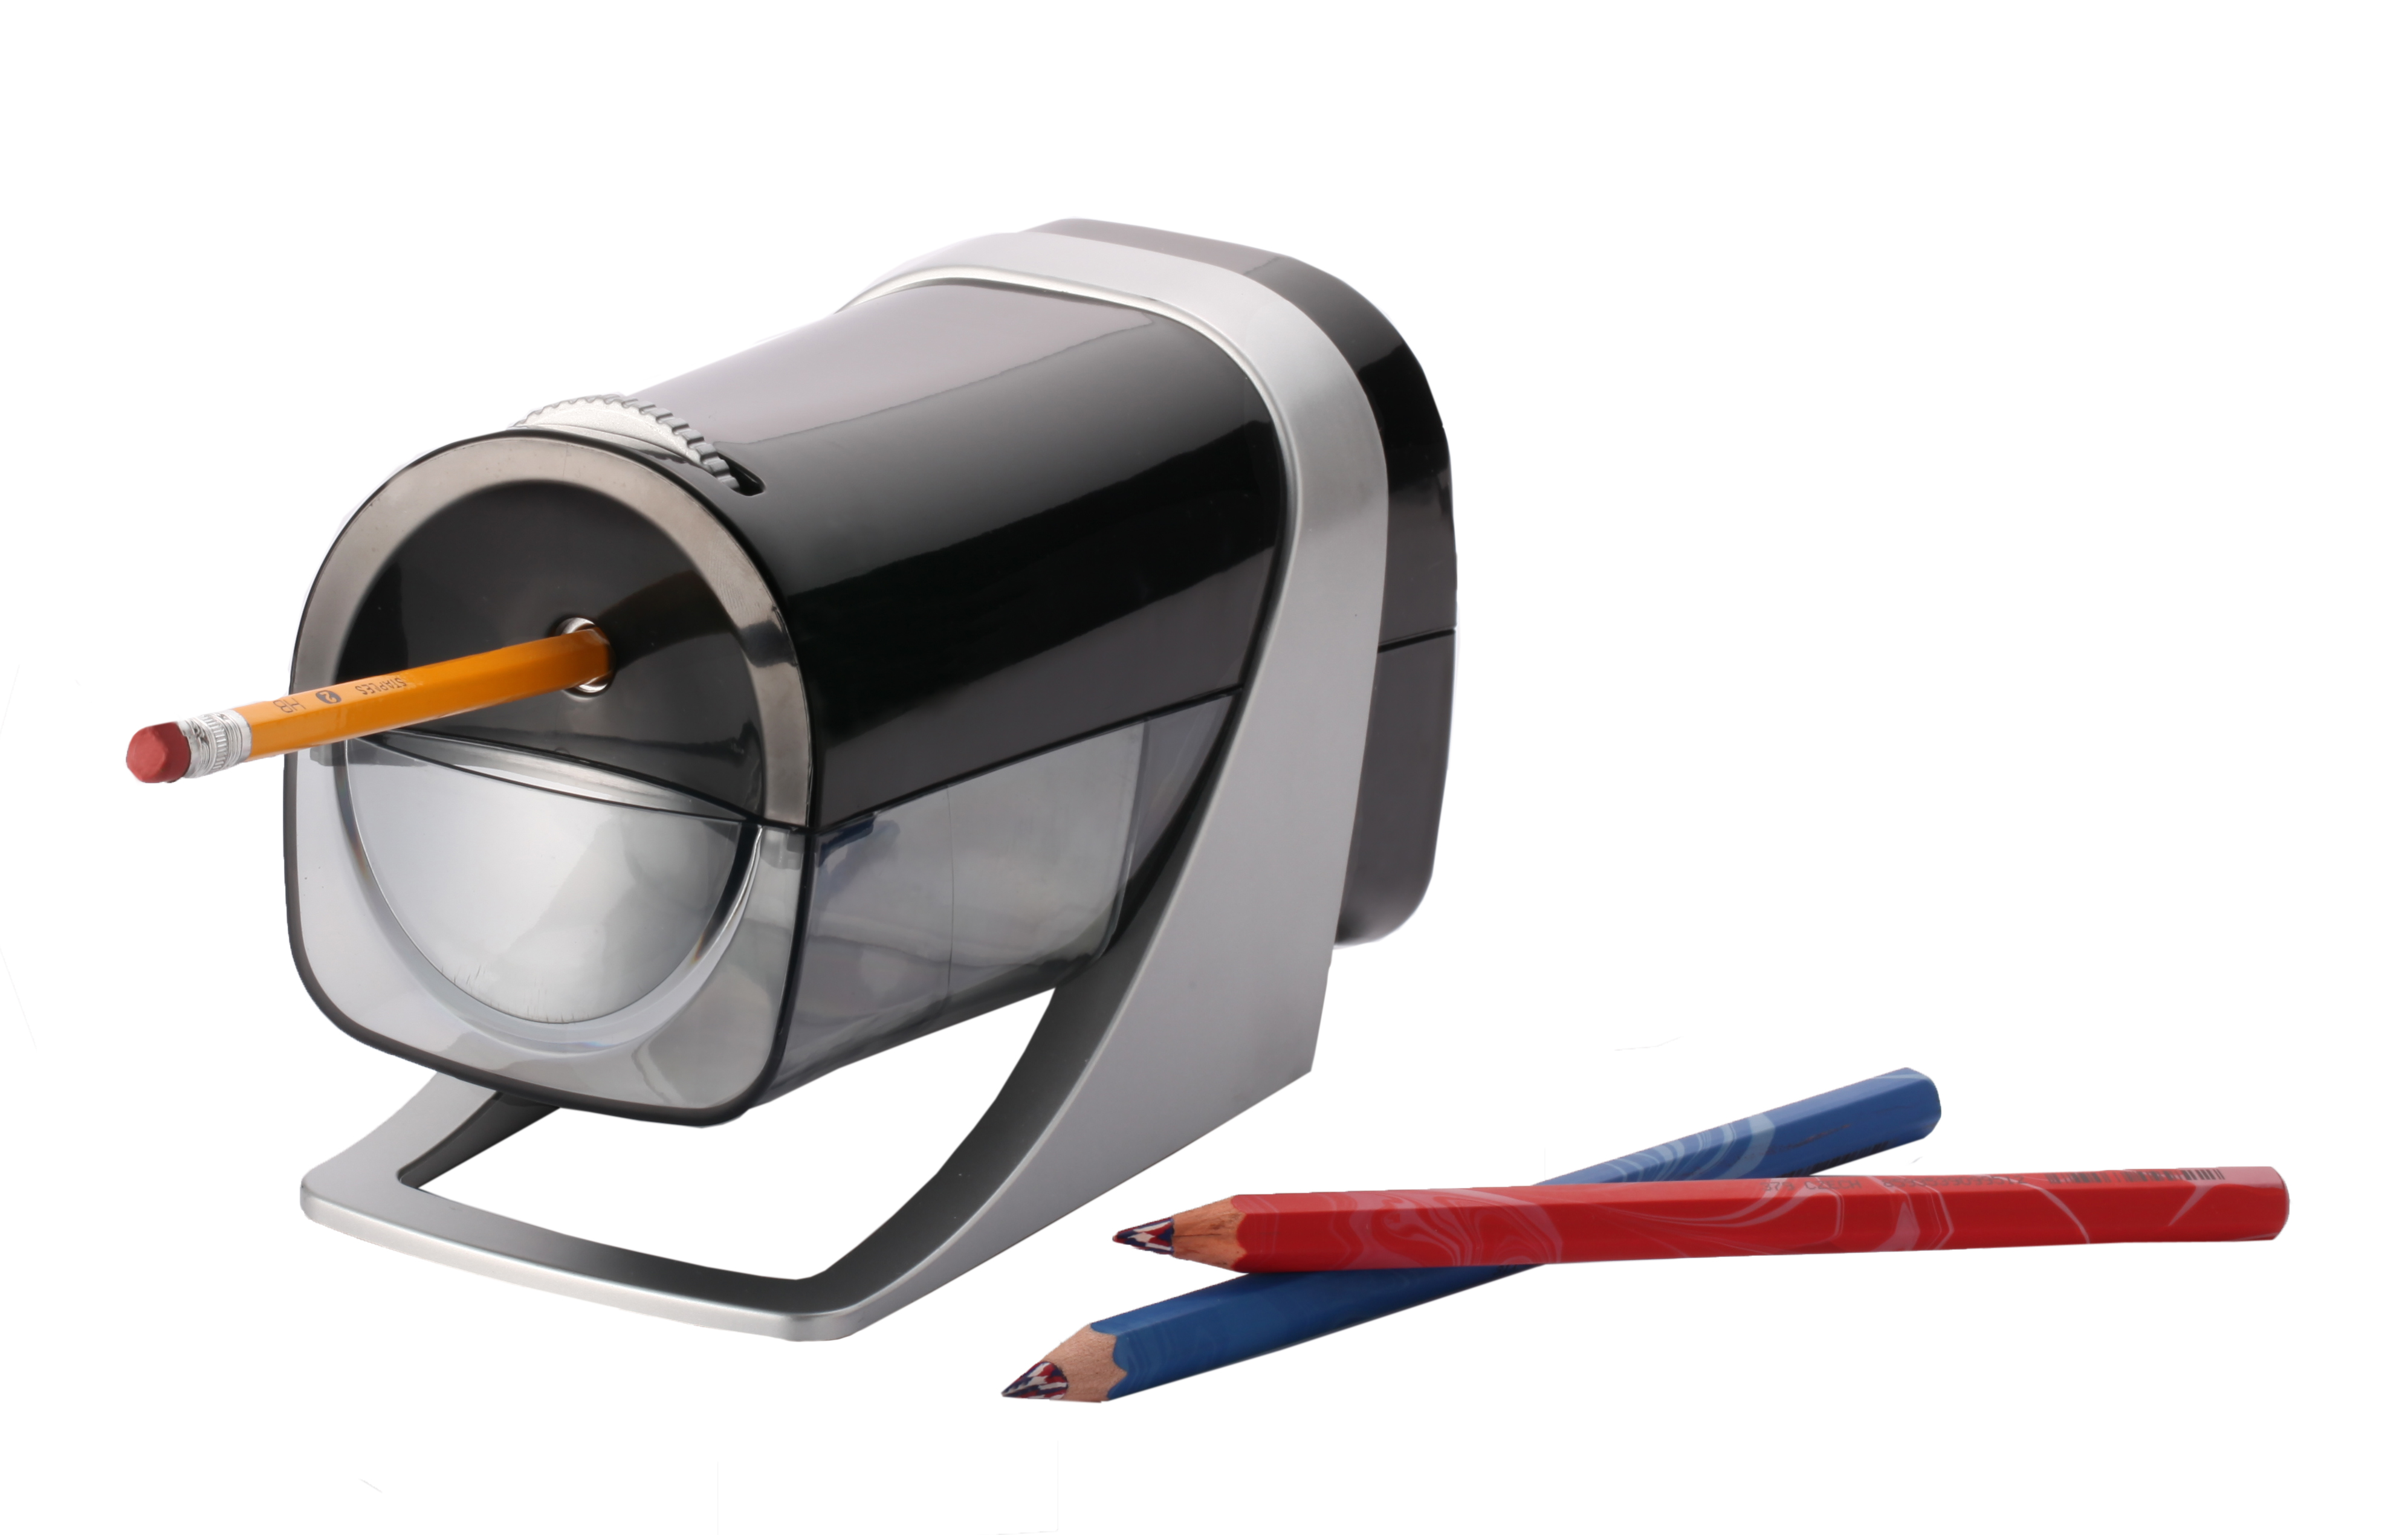 Westcott iPoint Curve Axis Electric Pencil Sharpener for School or Office (15511)